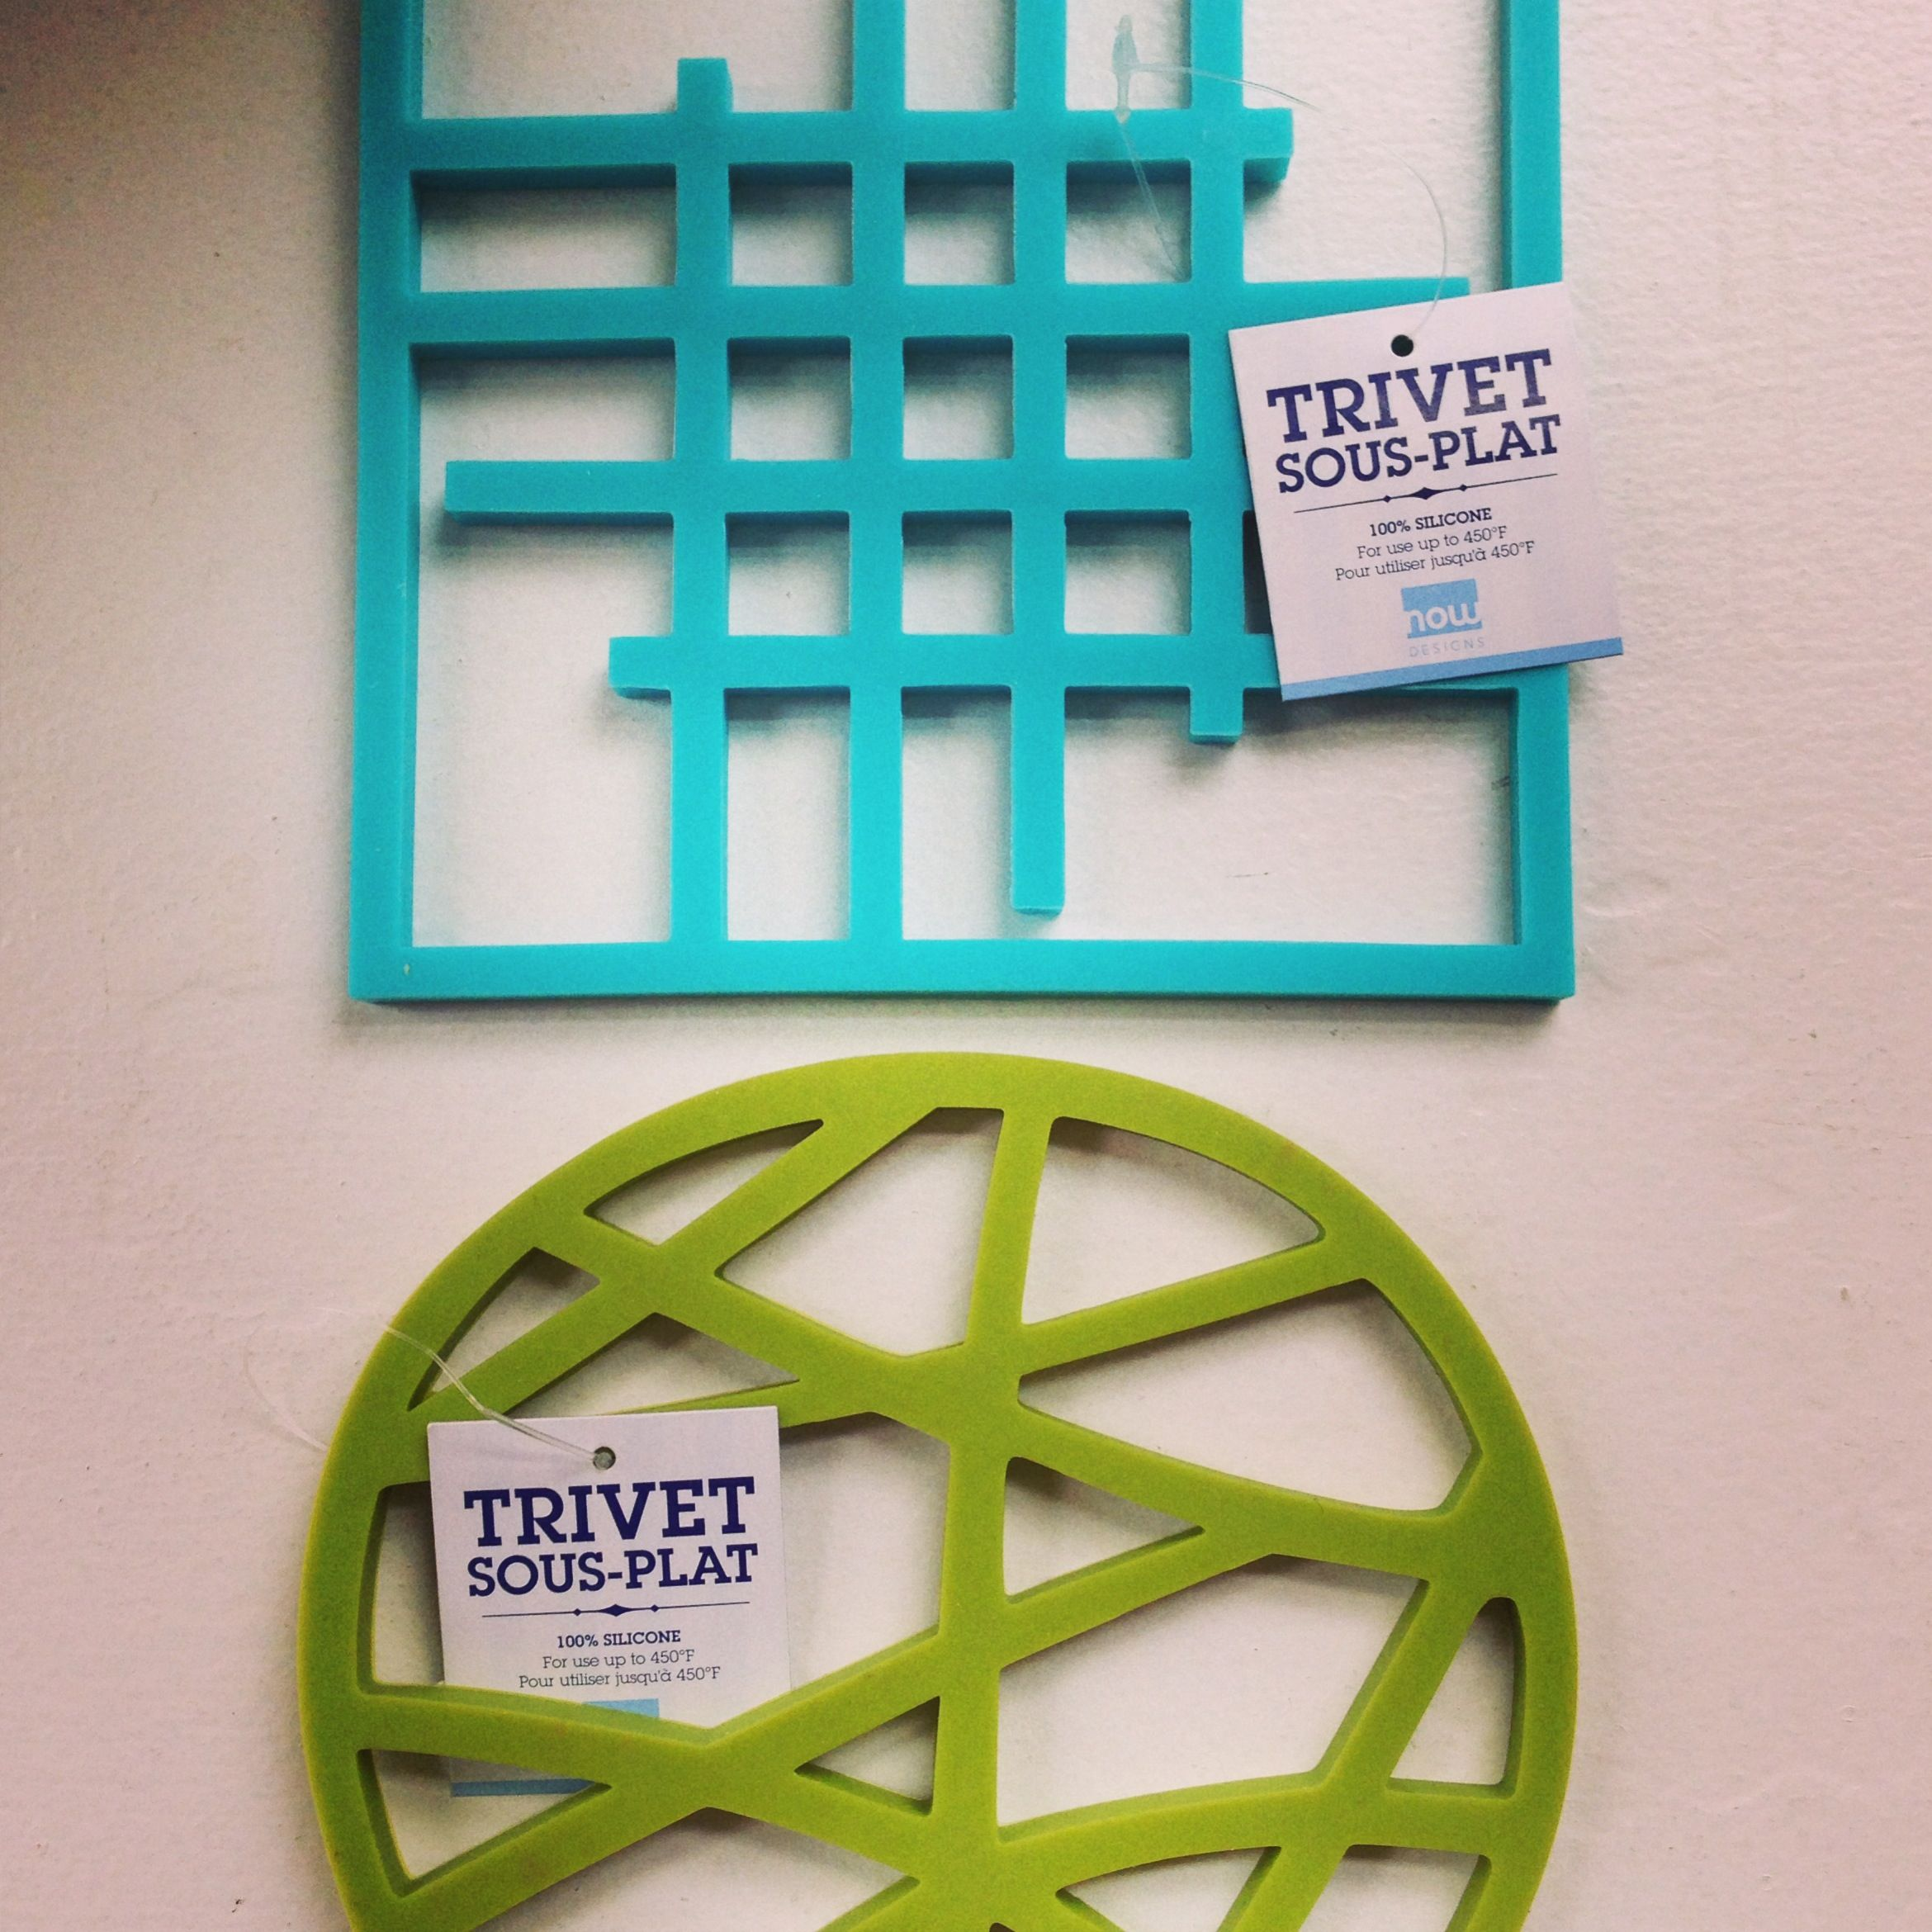 How Adorable And Functional Are These Silicone Trivets Silicone Trivet Trivets Kitchenware